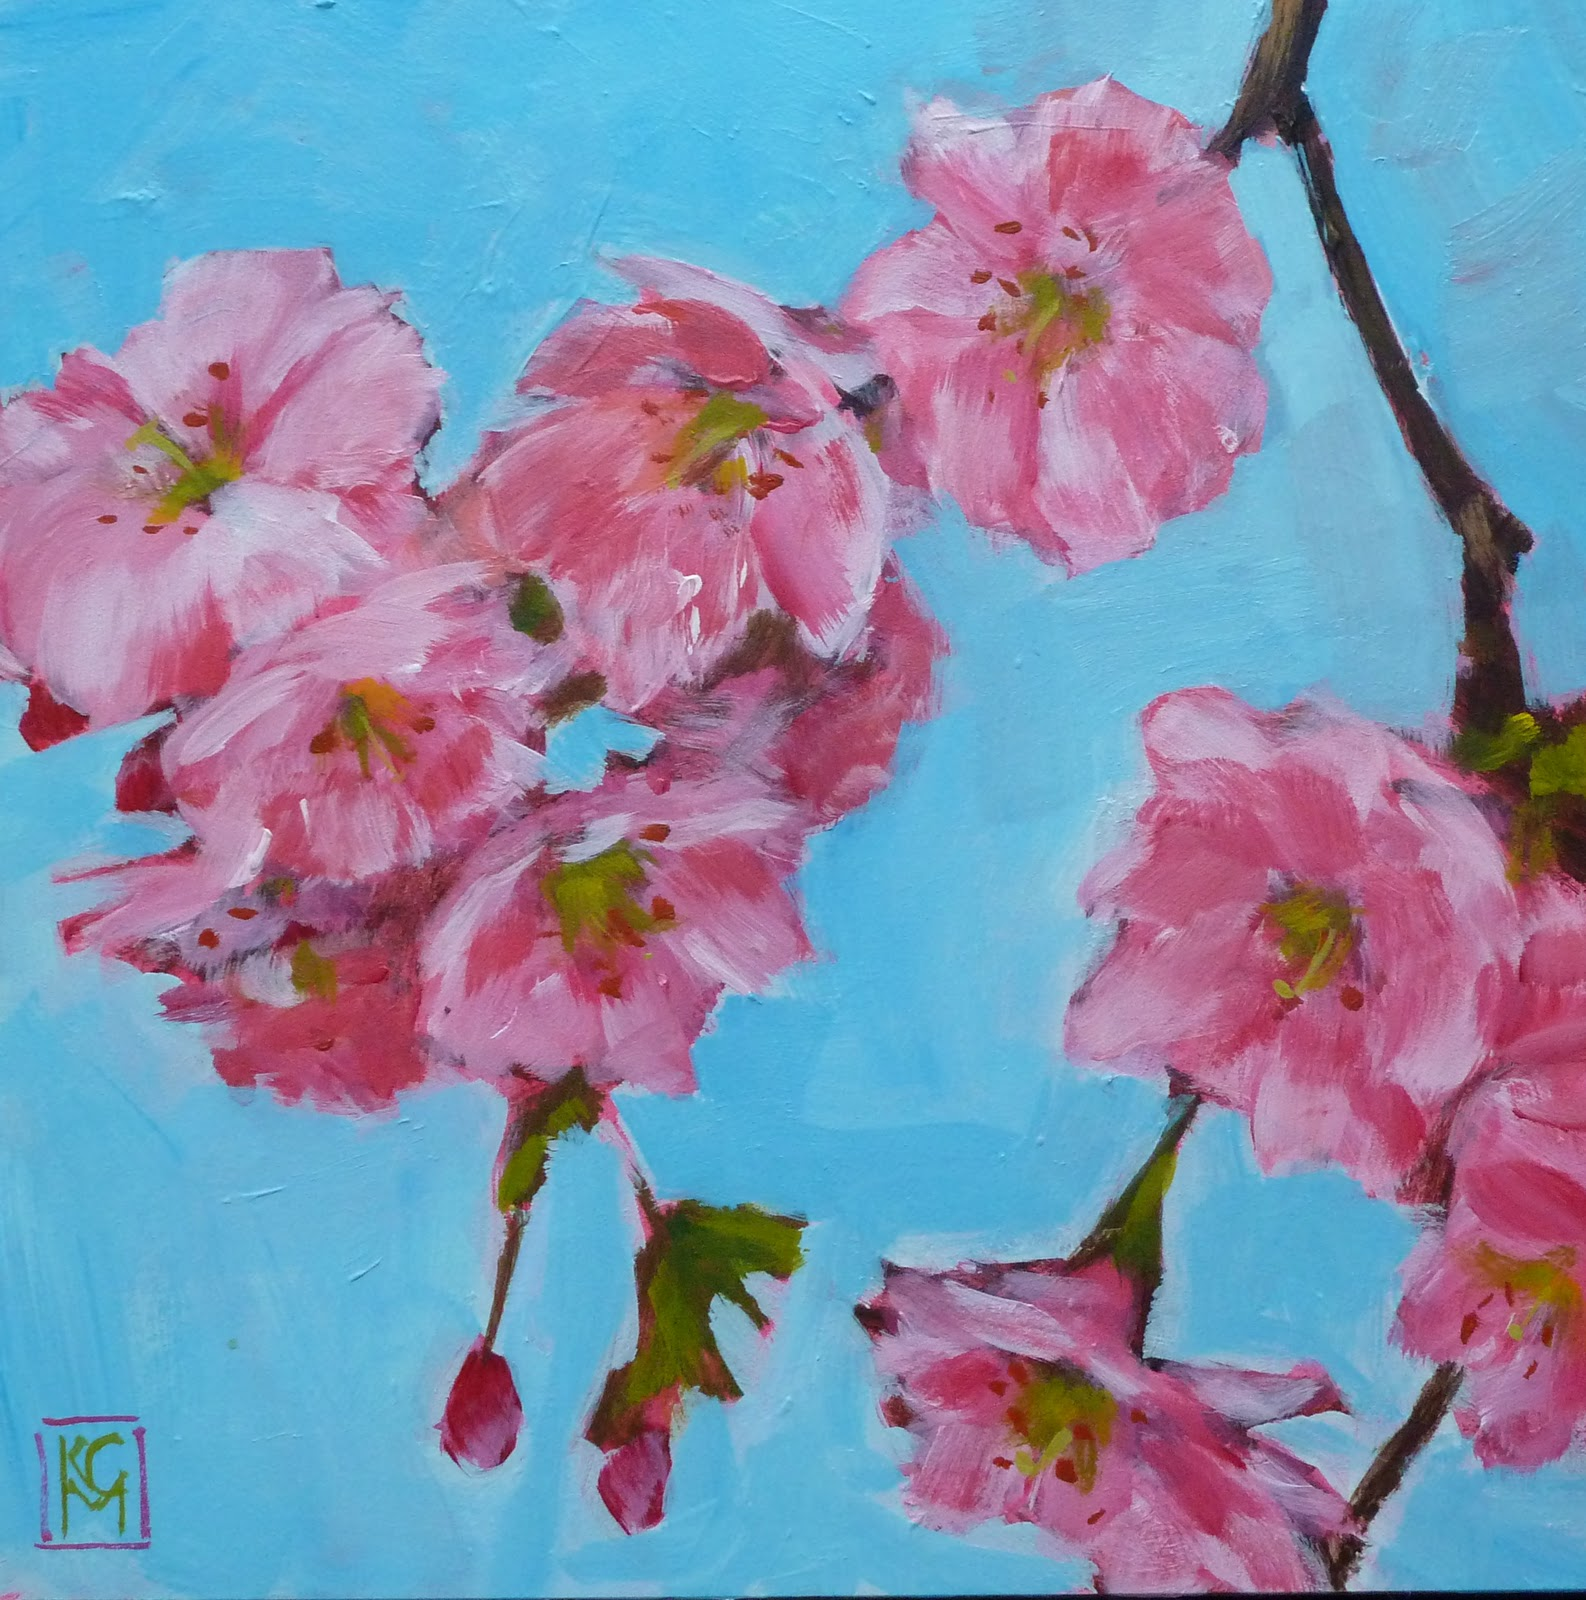 kelley macdonald 39 s paintings cherry blossoms 8x8 acrylic